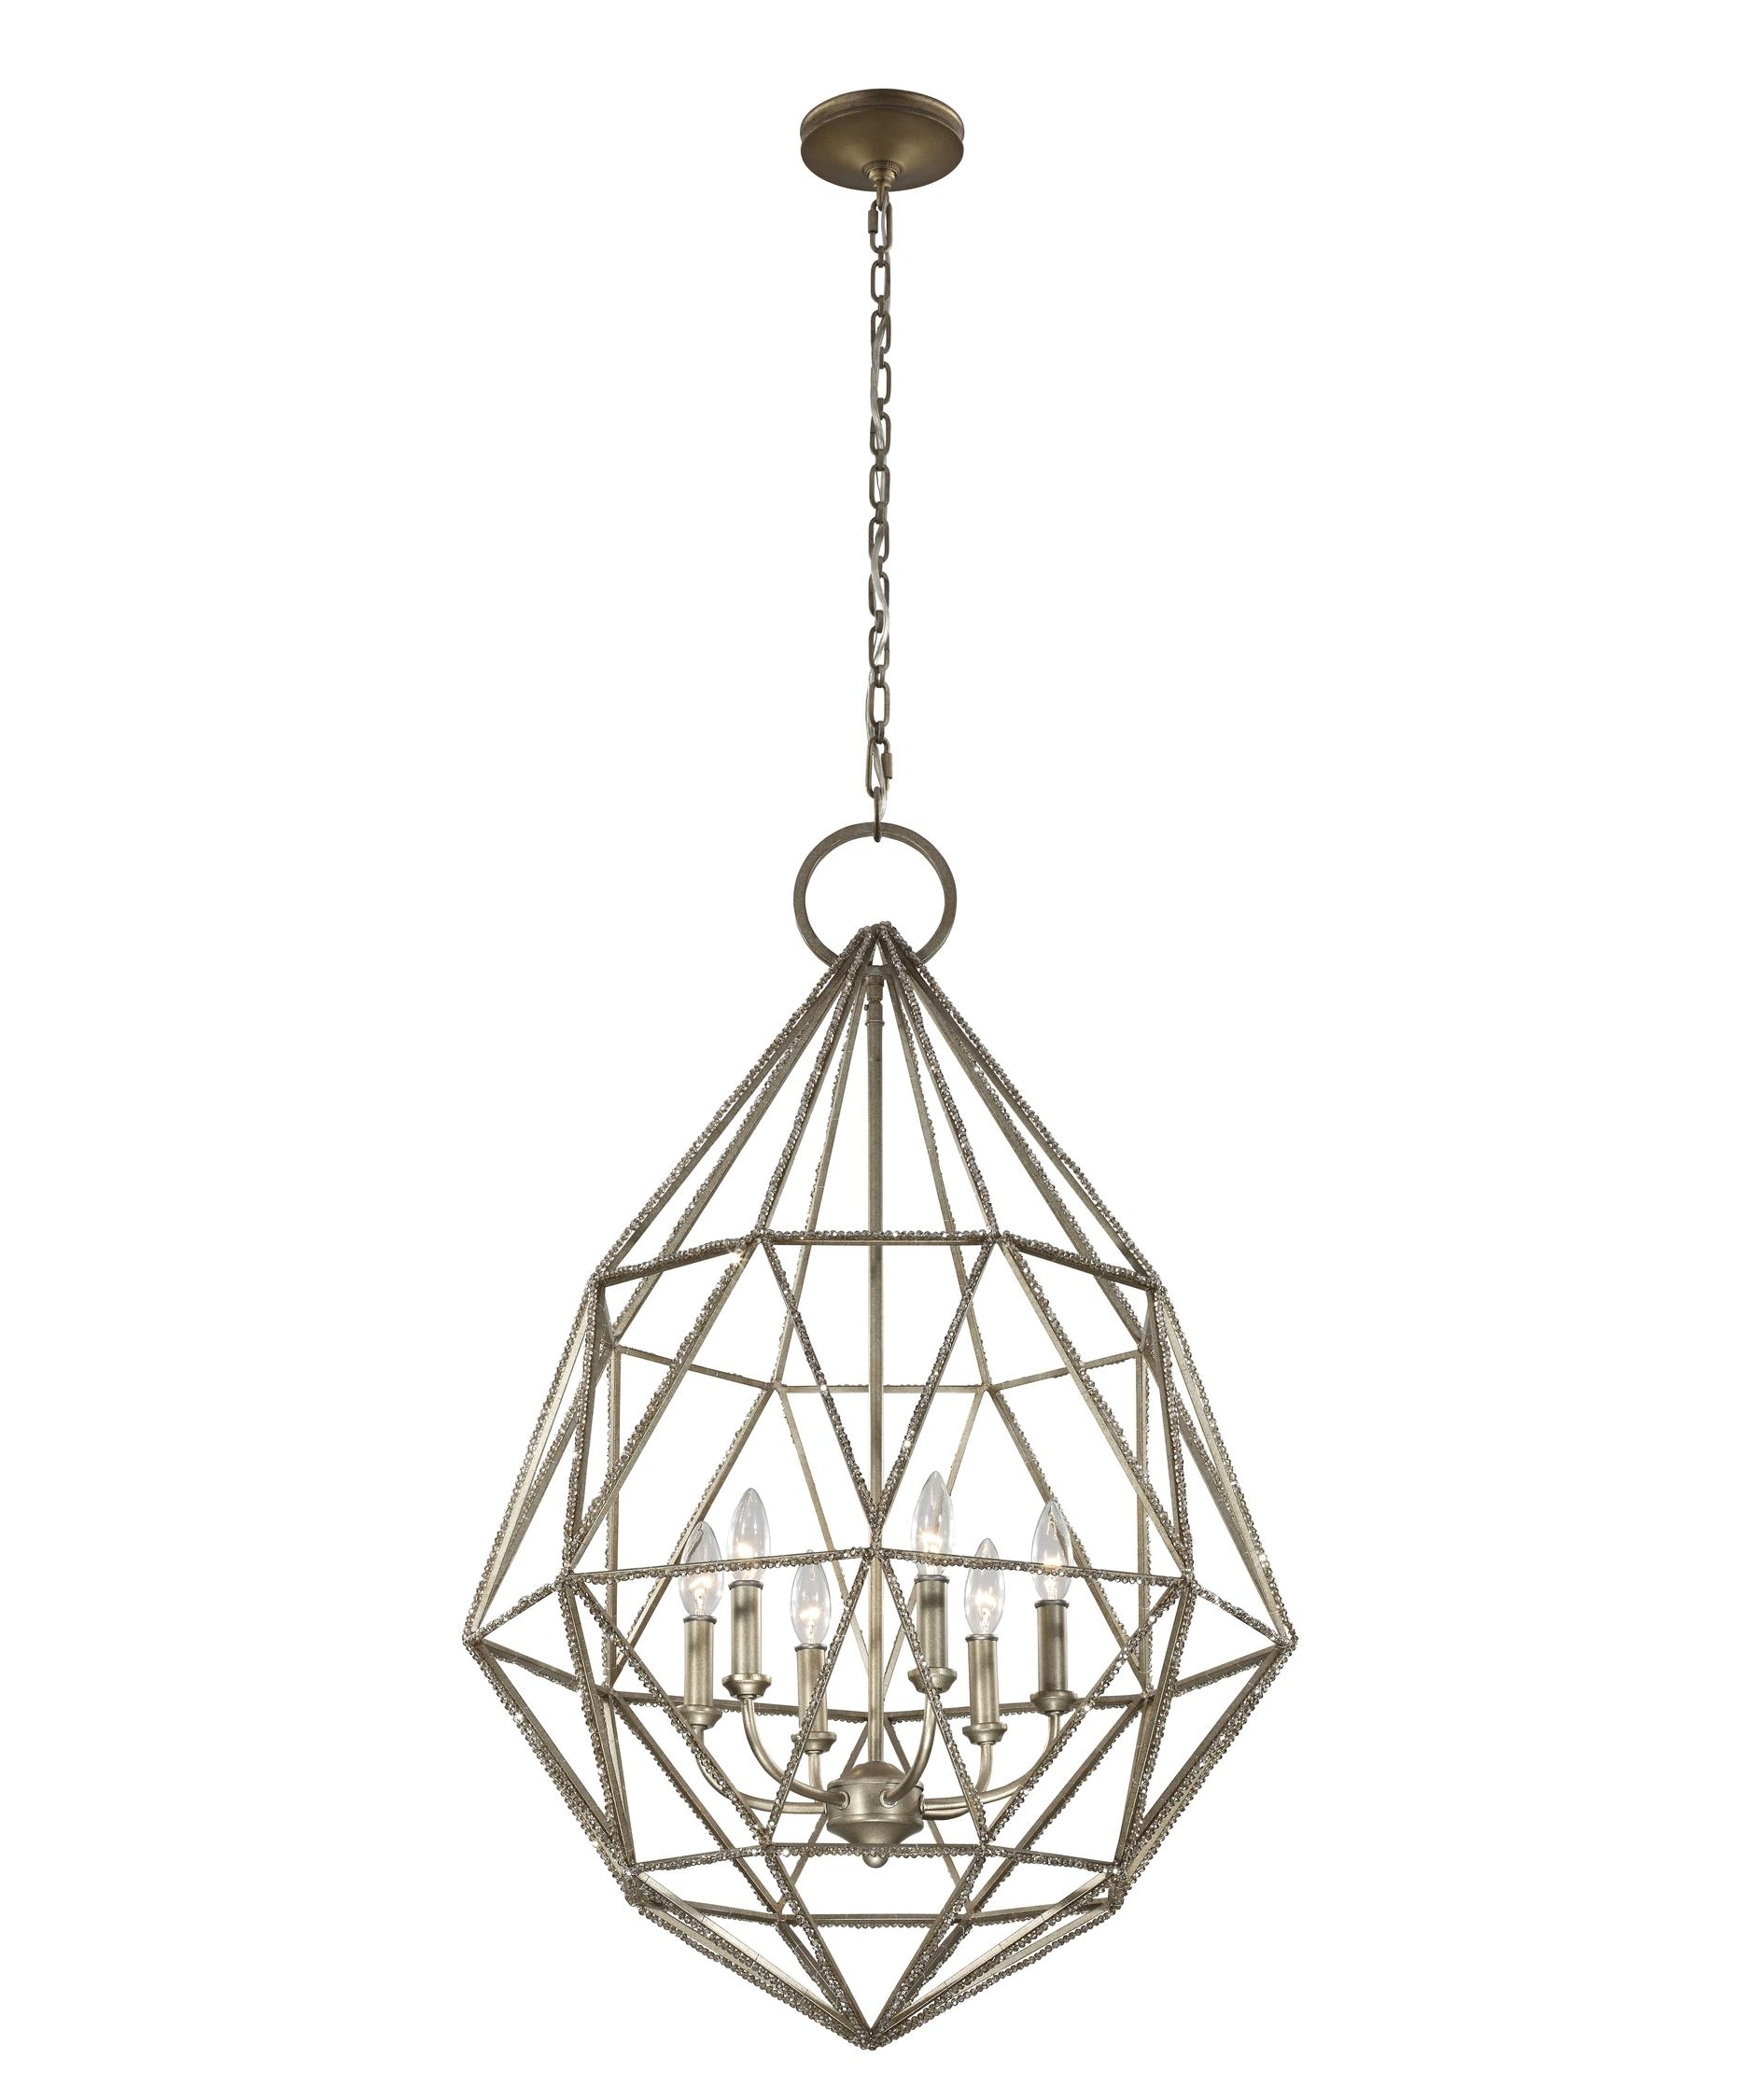 Popular Murray Feiss F2942 6 Marquise 25 Inch Wide 6 Light Chandelier Throughout Feiss Chandeliers (View 18 of 20)